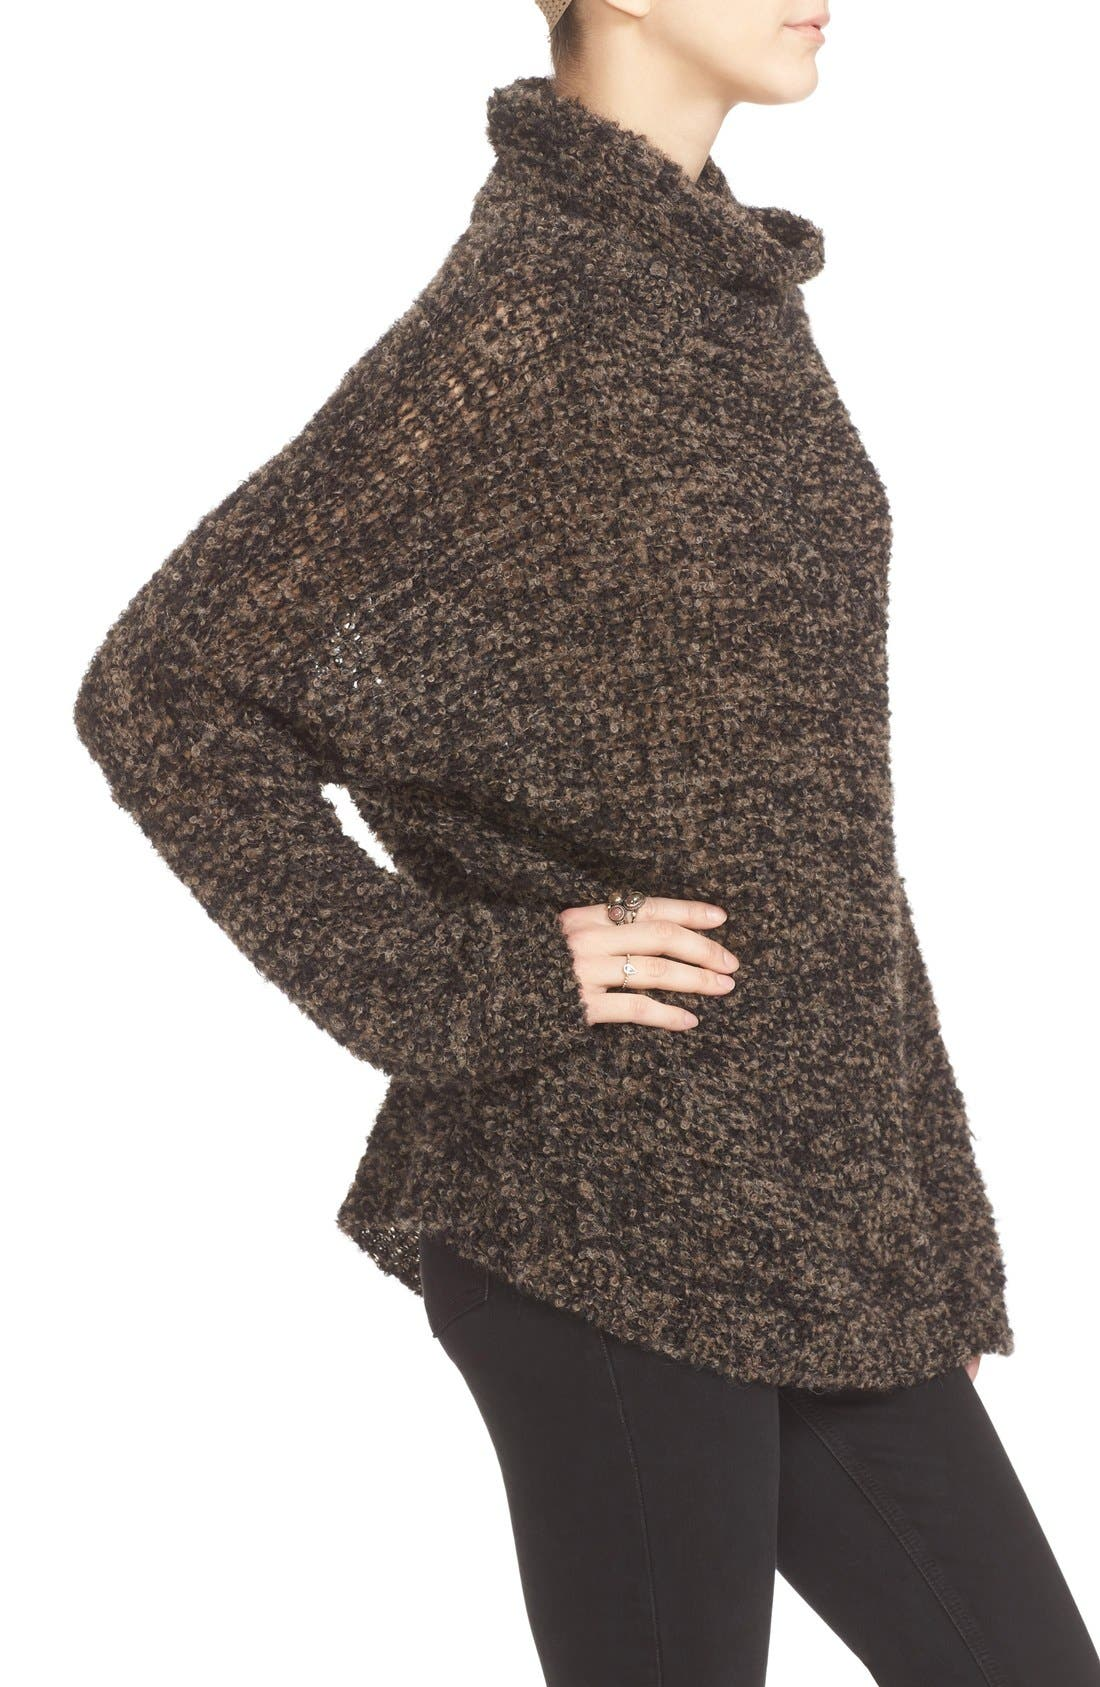 'She's All That' Knit Turtleneck Sweater,                             Alternate thumbnail 17, color,